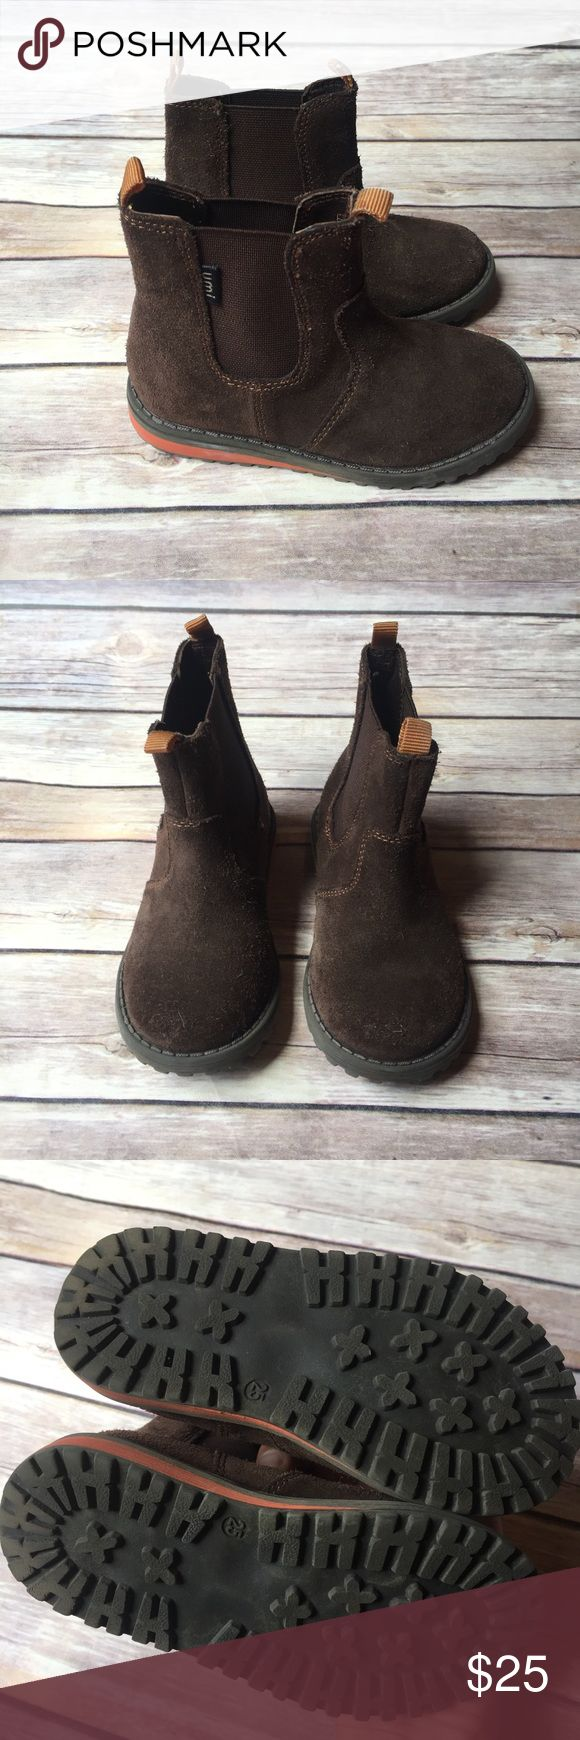 Toddler Umi Boots Size 25 (US size 8.5 toddler) Umi suede dark brown boots in good used condition.  Soles look new.  Minor wear to the suede.  Easy pull on boots with stretchy sides. Umi Shoes Boots